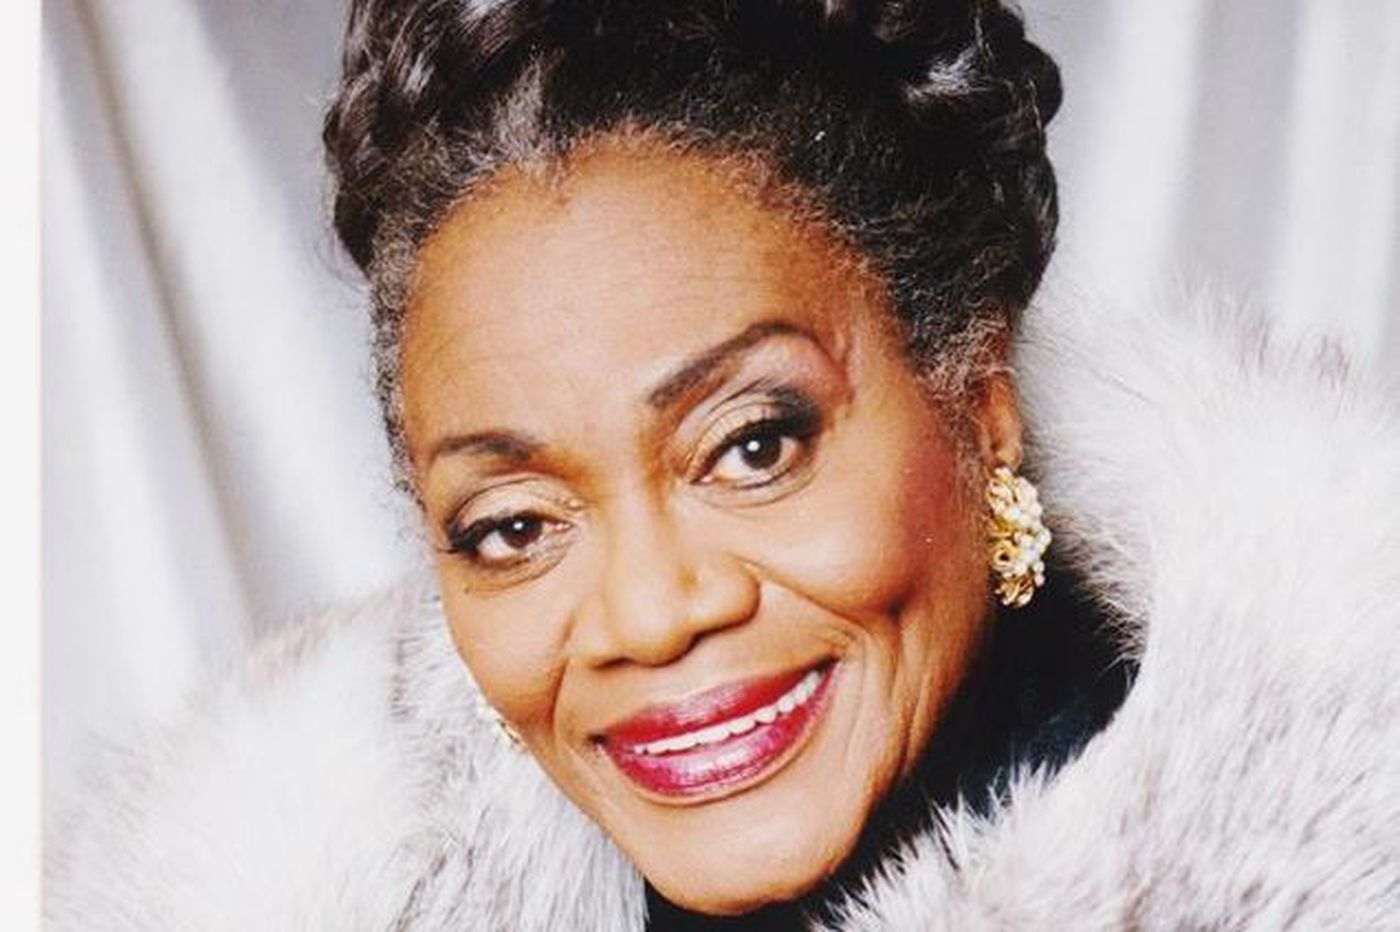 Blanche Burton-Lyles, 85, concert pianist who founded Marian Anderson Historical Society